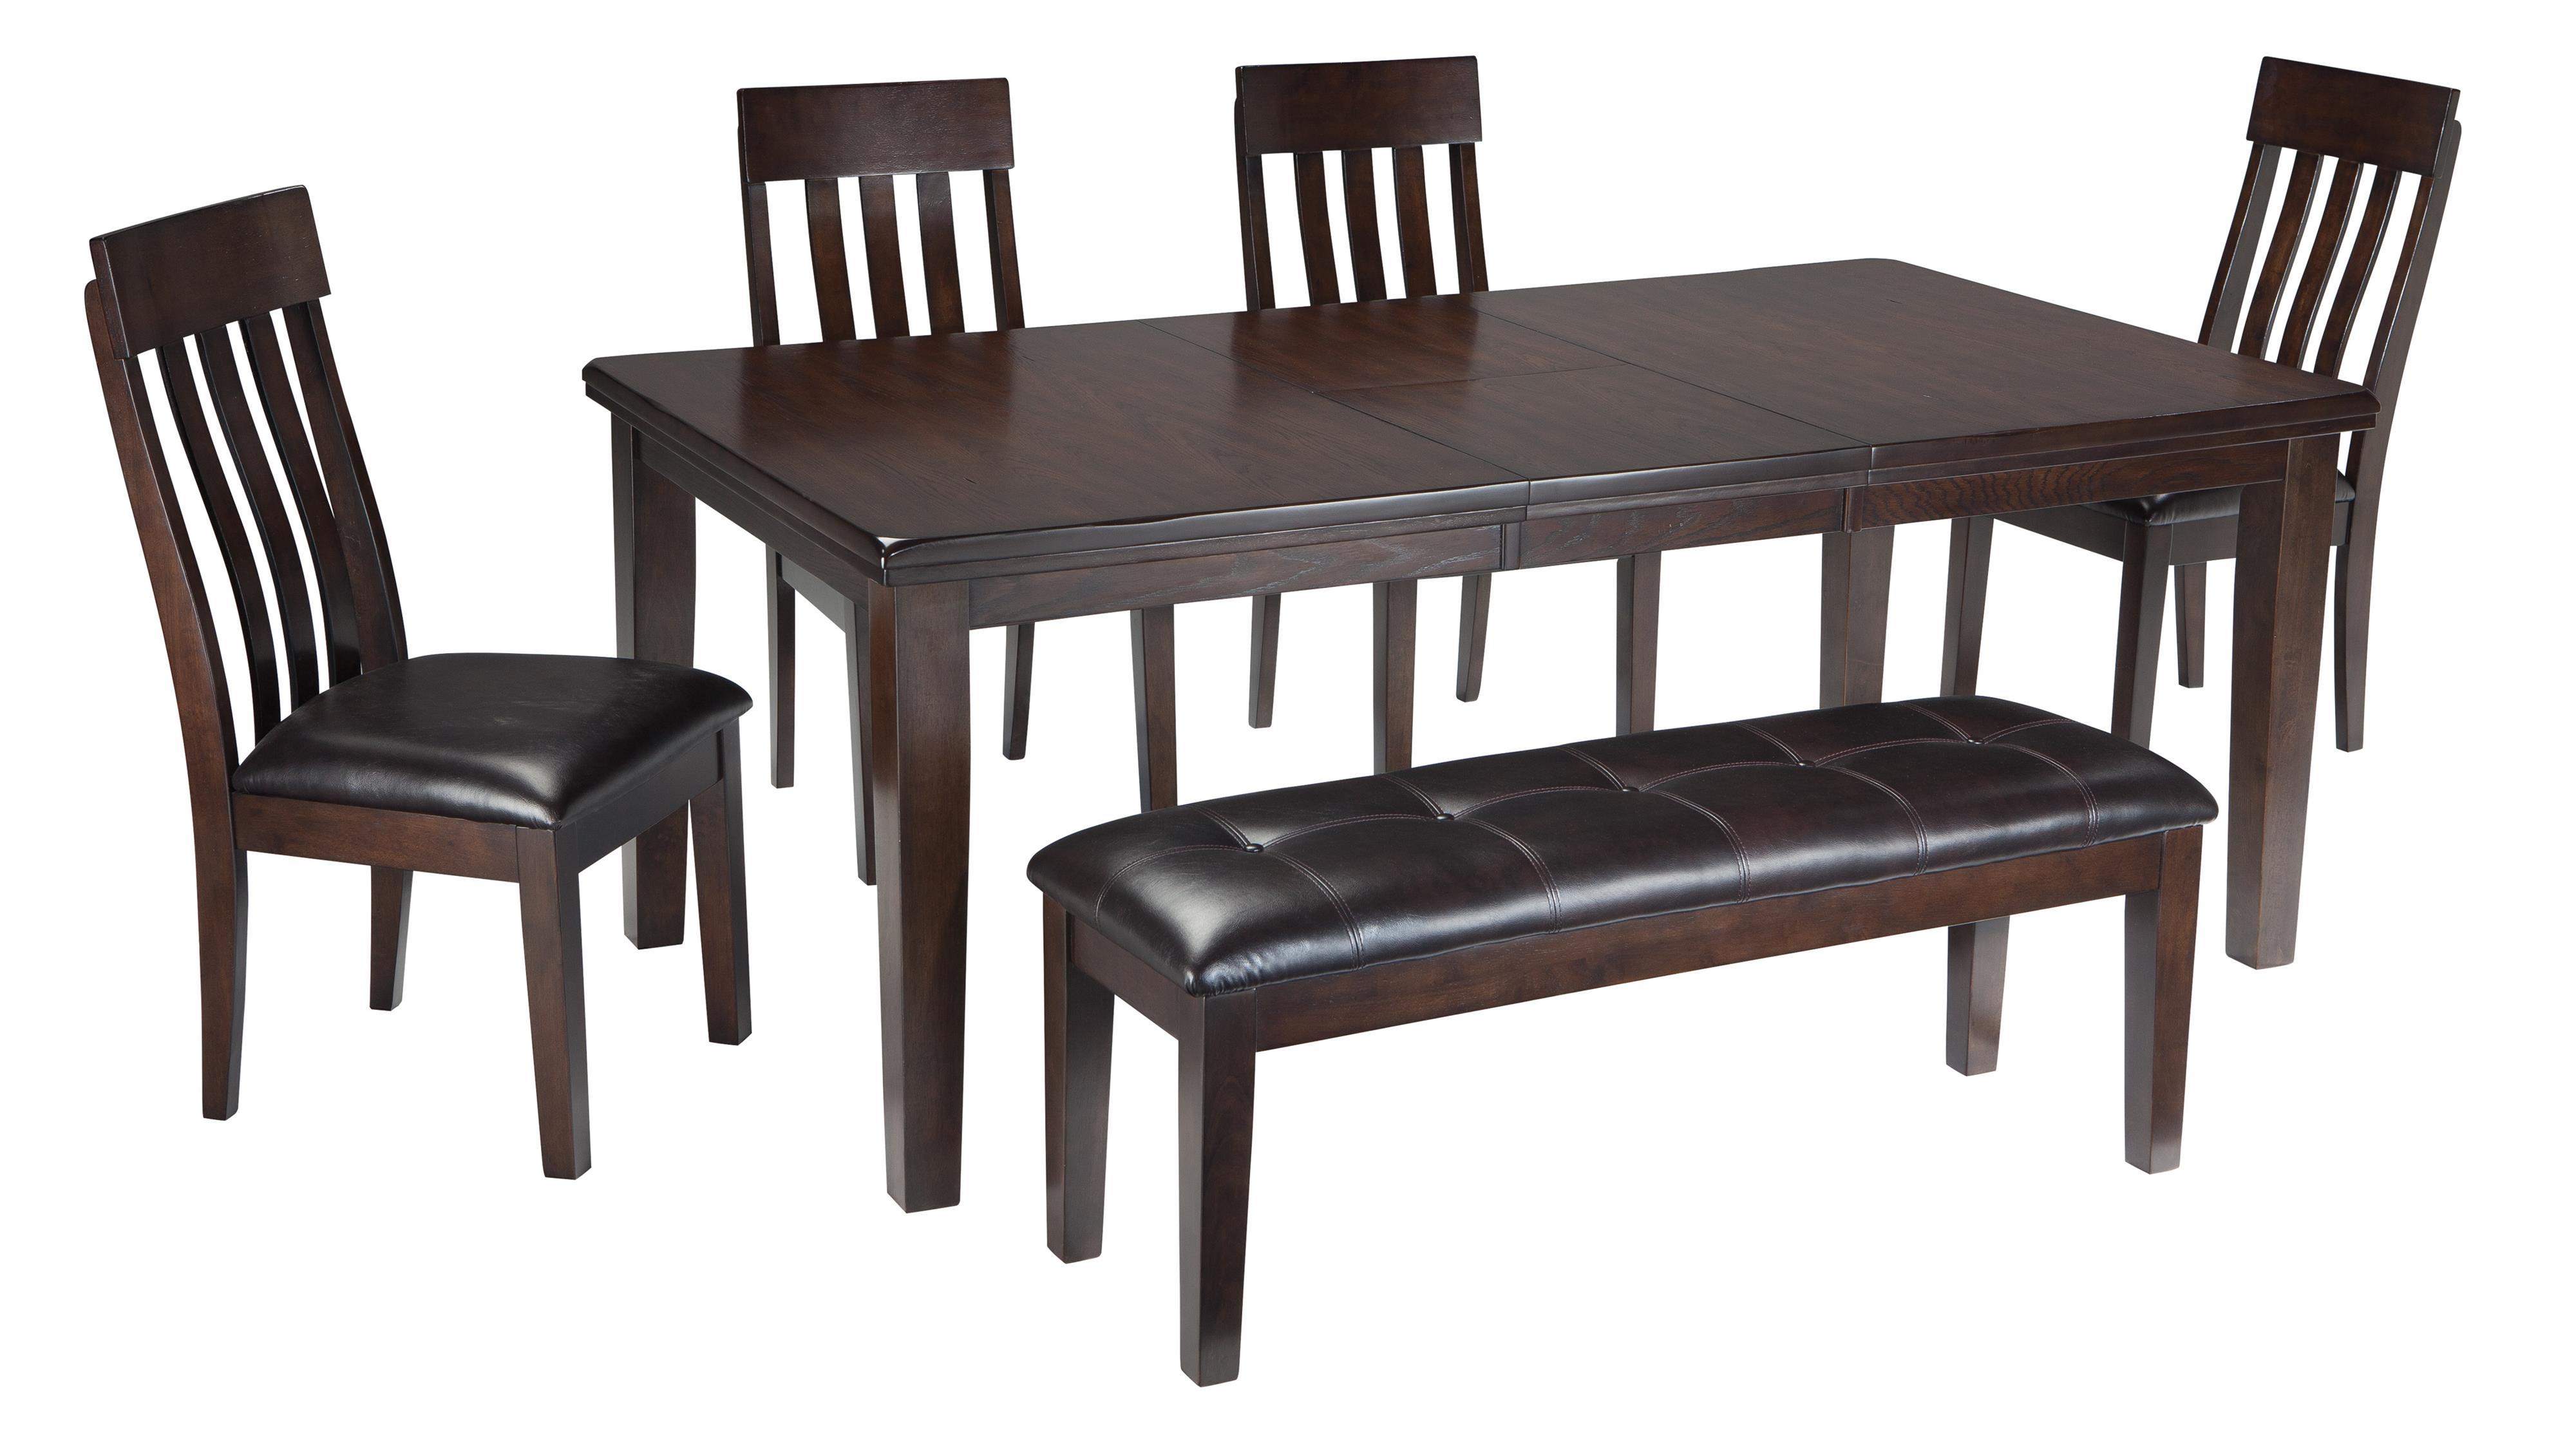 Ashley Furniture Table And Chairs Signature Design By Ashley Haddigan 6 Piece Rectangular